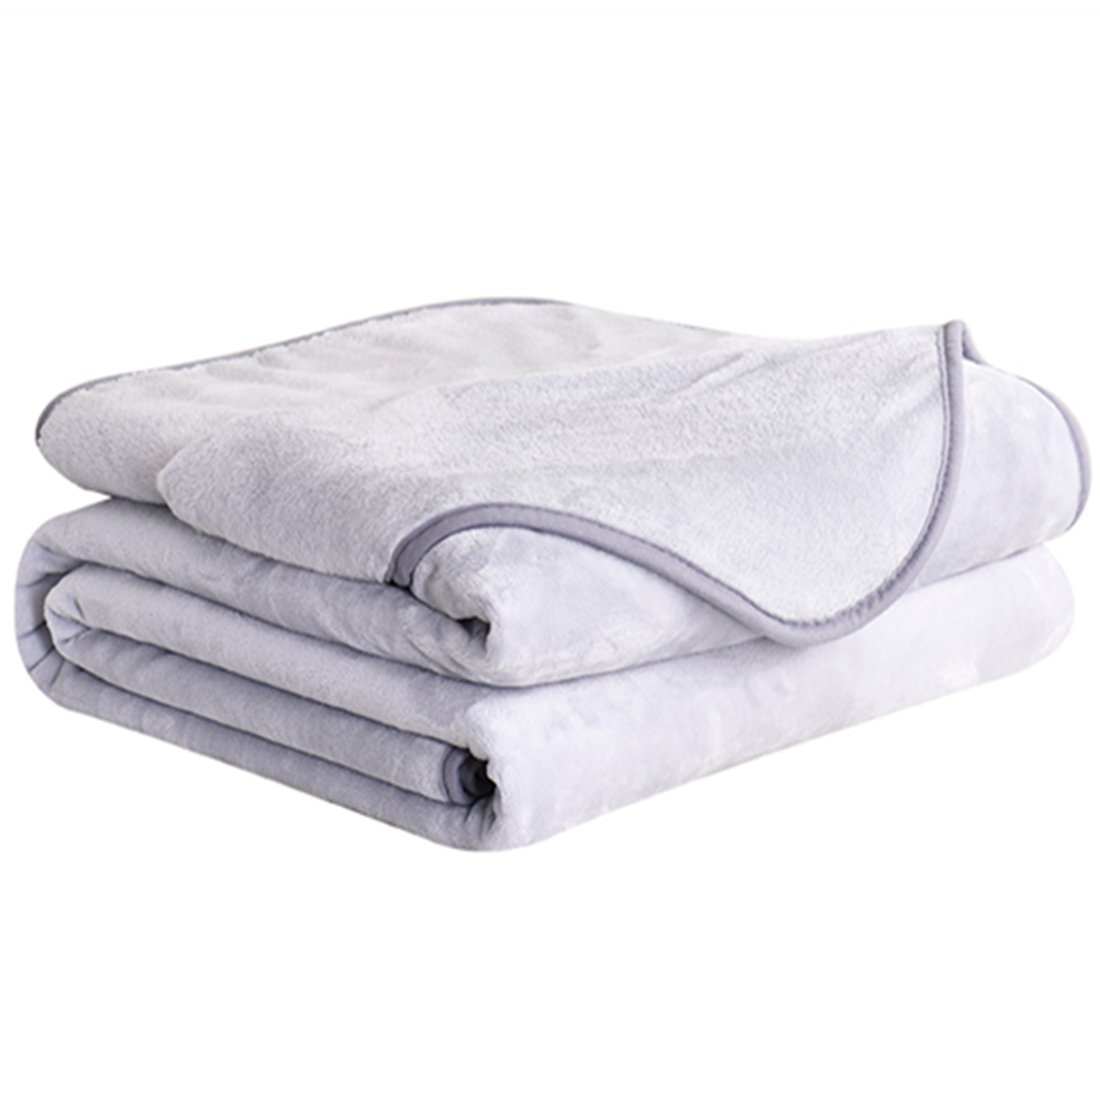 DREAMFLYLIFE Fleece Blanket 380 GSM Anti-static Super Soft Lightweight Summer Cooling Warm Fuzzy Bed Blanket Couch Blanket (King, Grey)